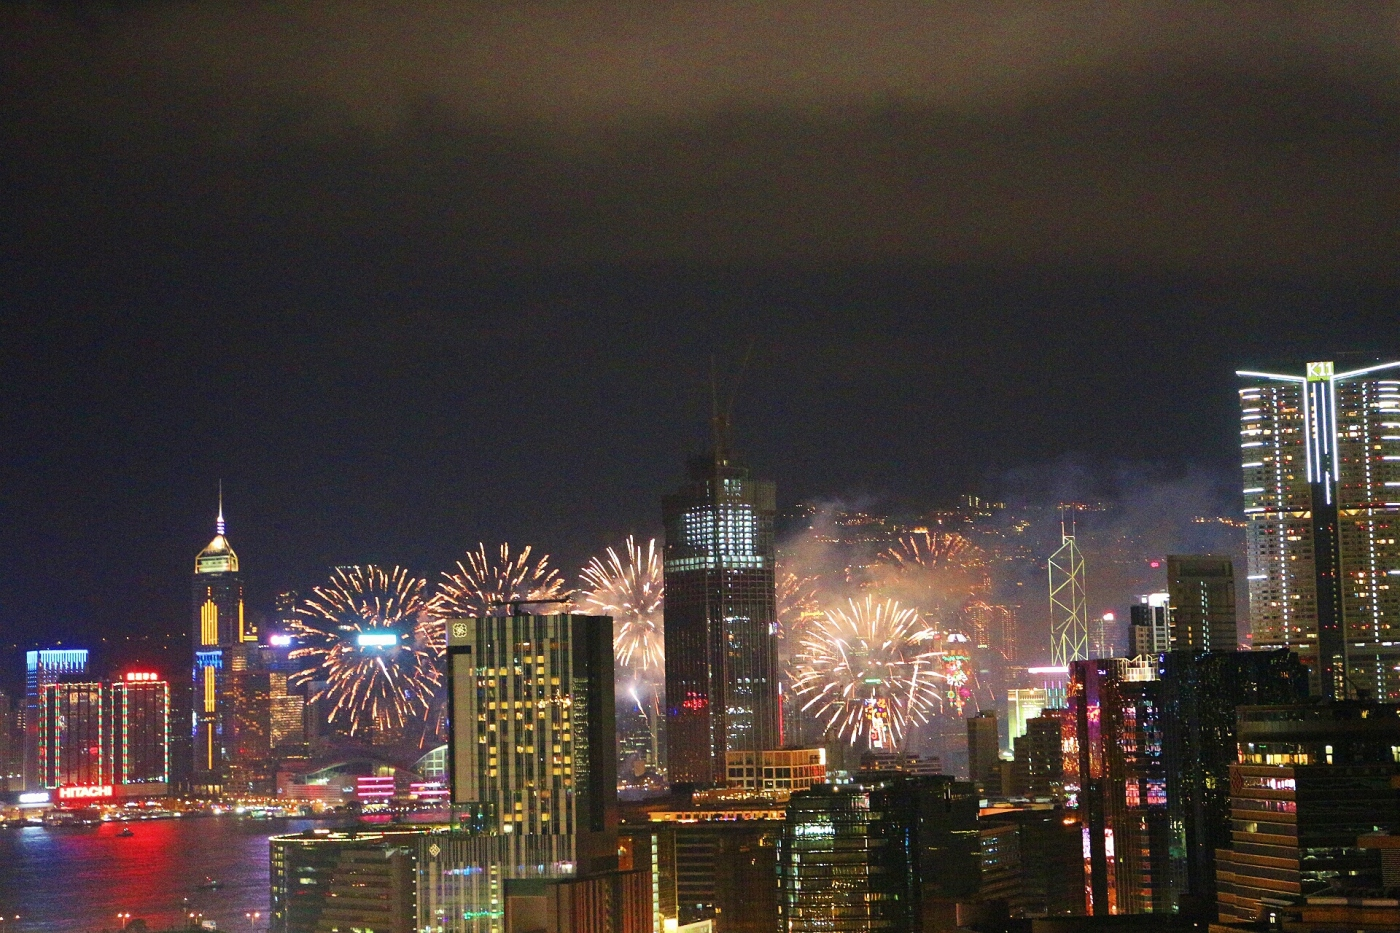 Hong Kong, night time, view, fireworks, firework display, chinese new year